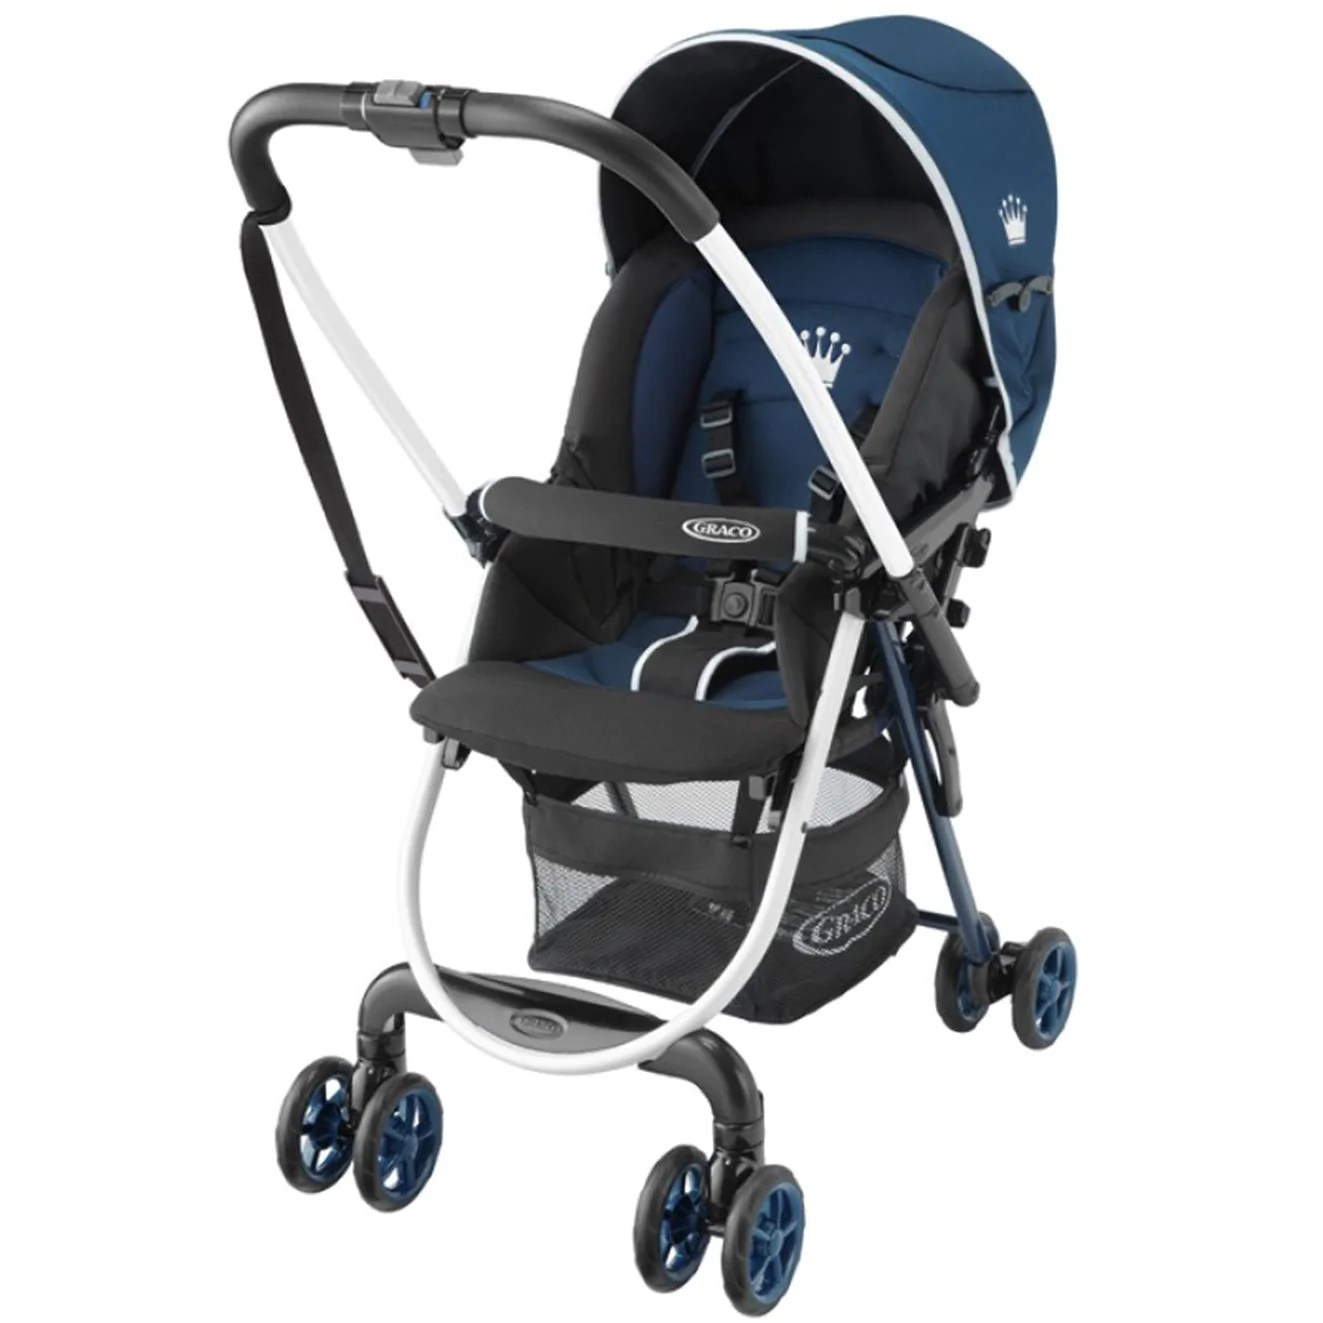 Newborn Baby Buggy Reviews Graco Citilite Stroller